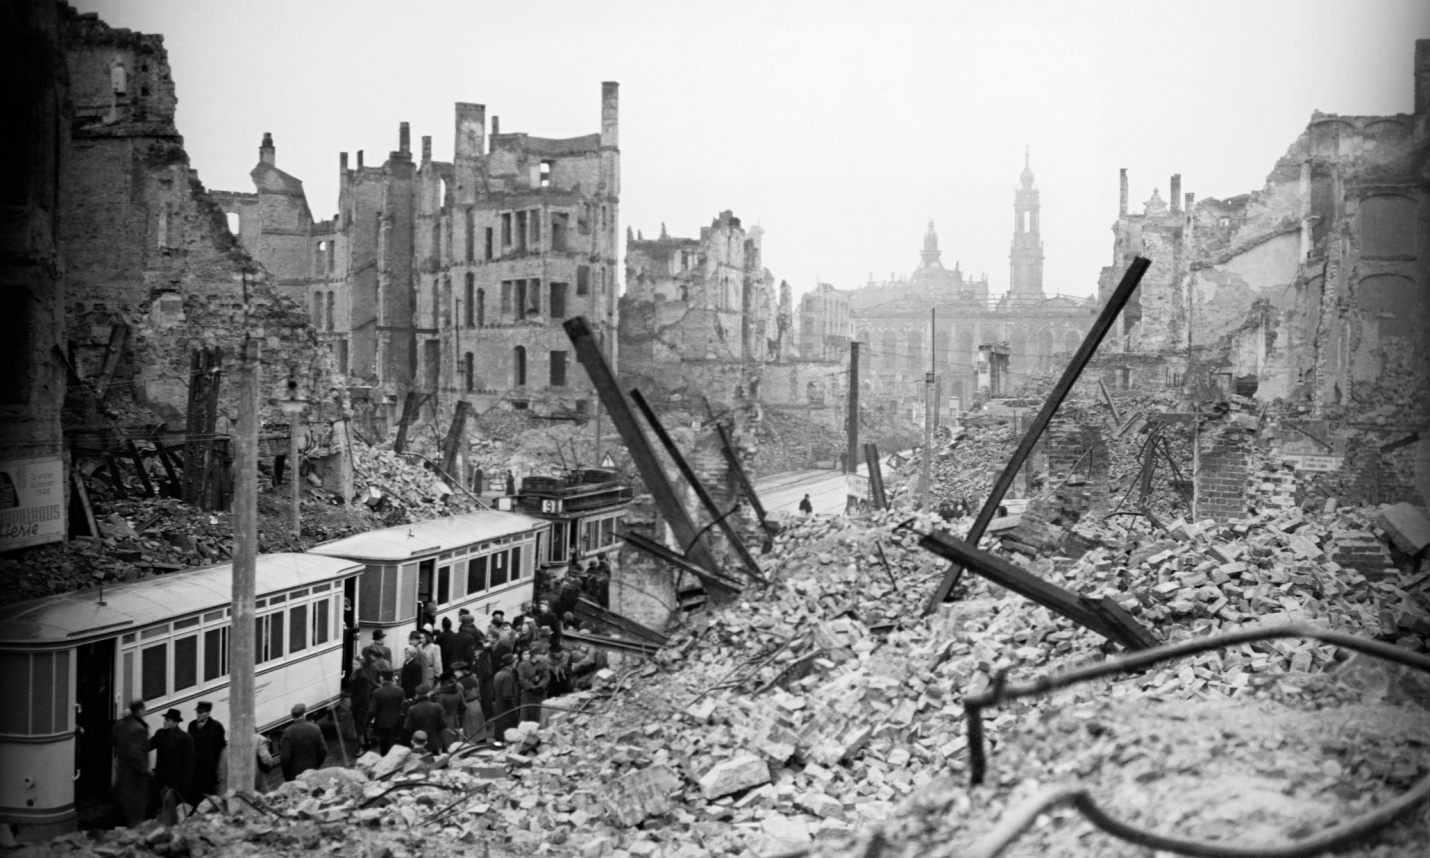 the germans initiated the strategic bombings of london and england Battle of britain in rare pictures, 1940 1940 in london, england when the germans launched bombing raids involving up to nearly 1,500 aircraft a day and.